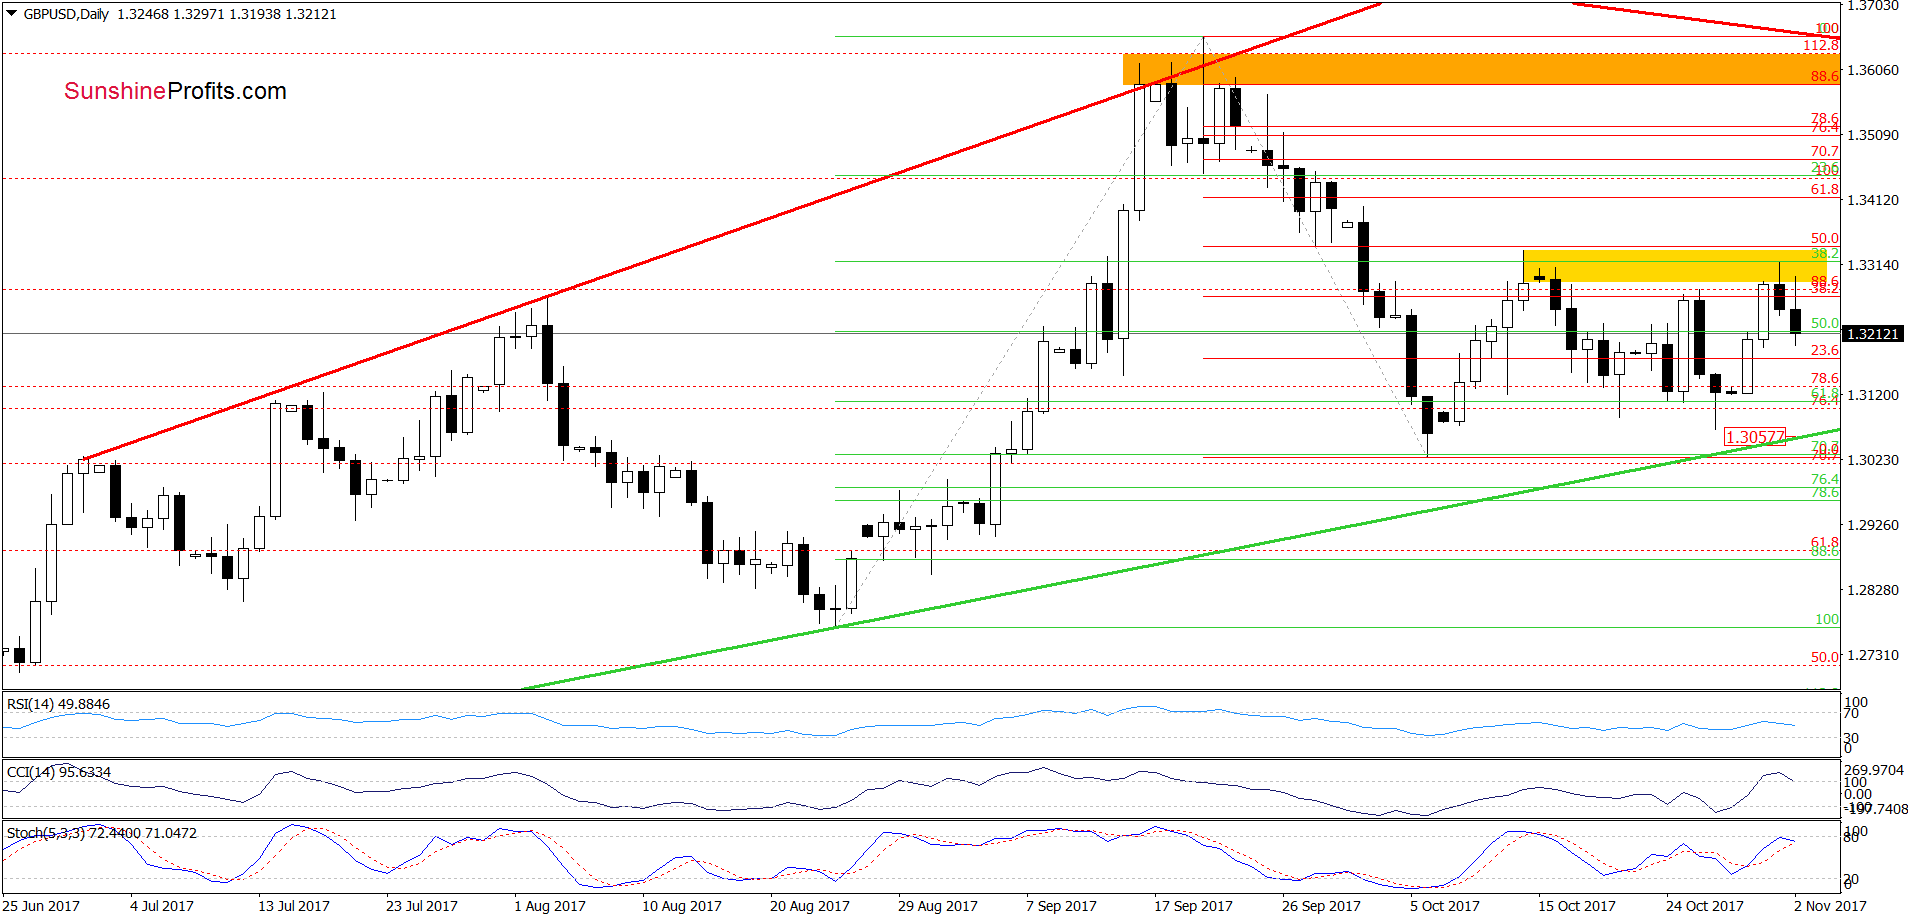 GBP/USD - the daily chart